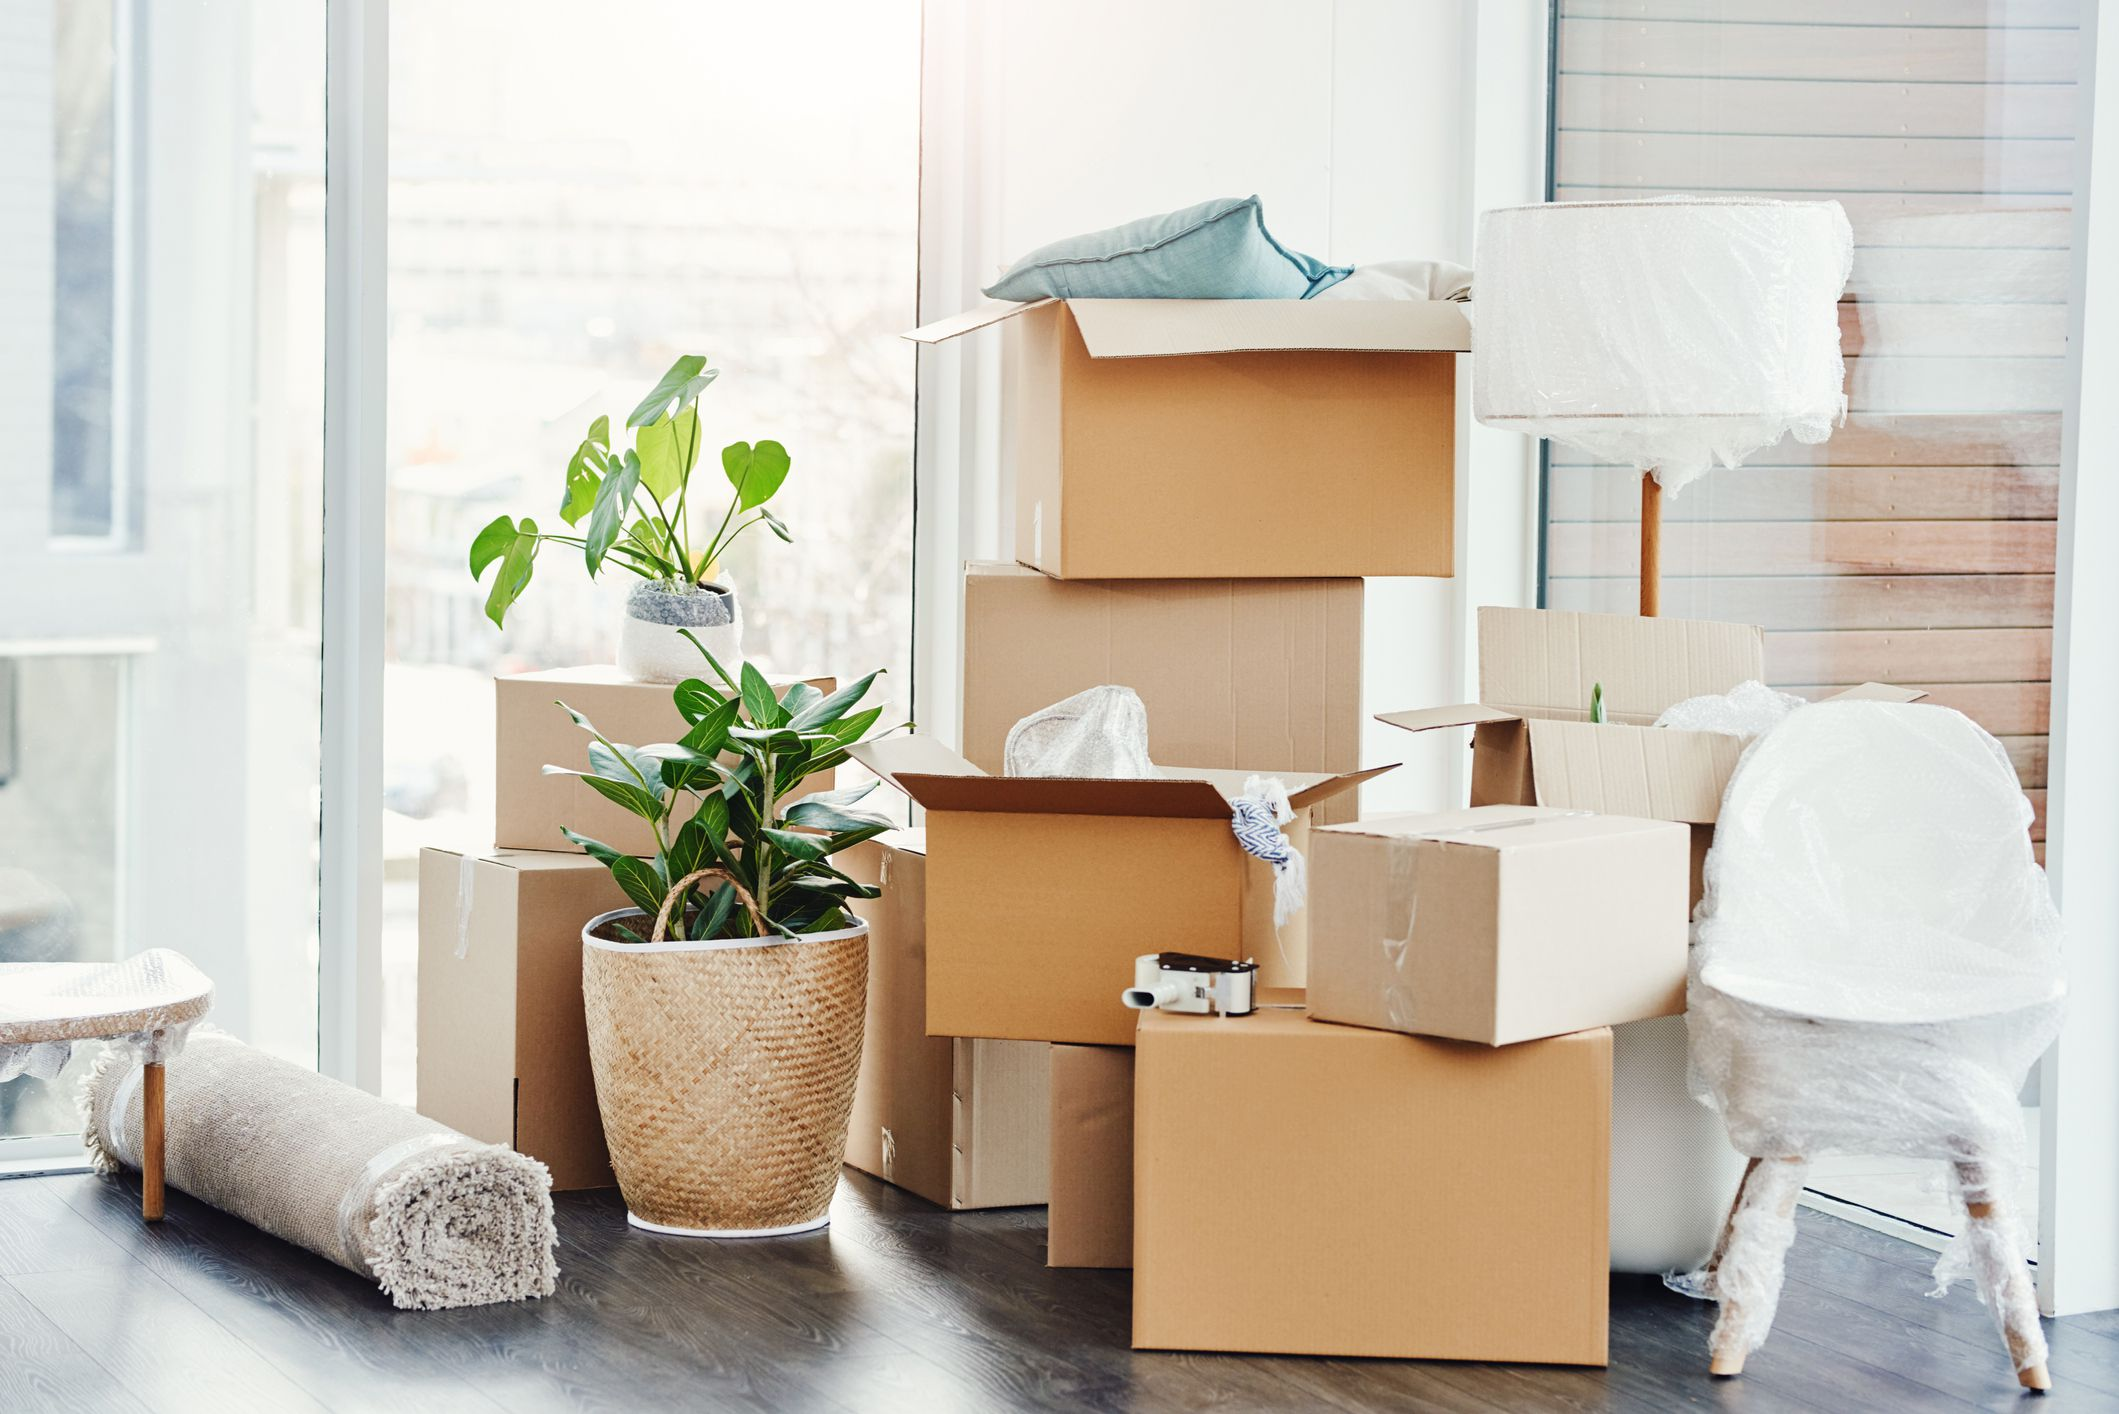 %2fit s moving day 1147468408